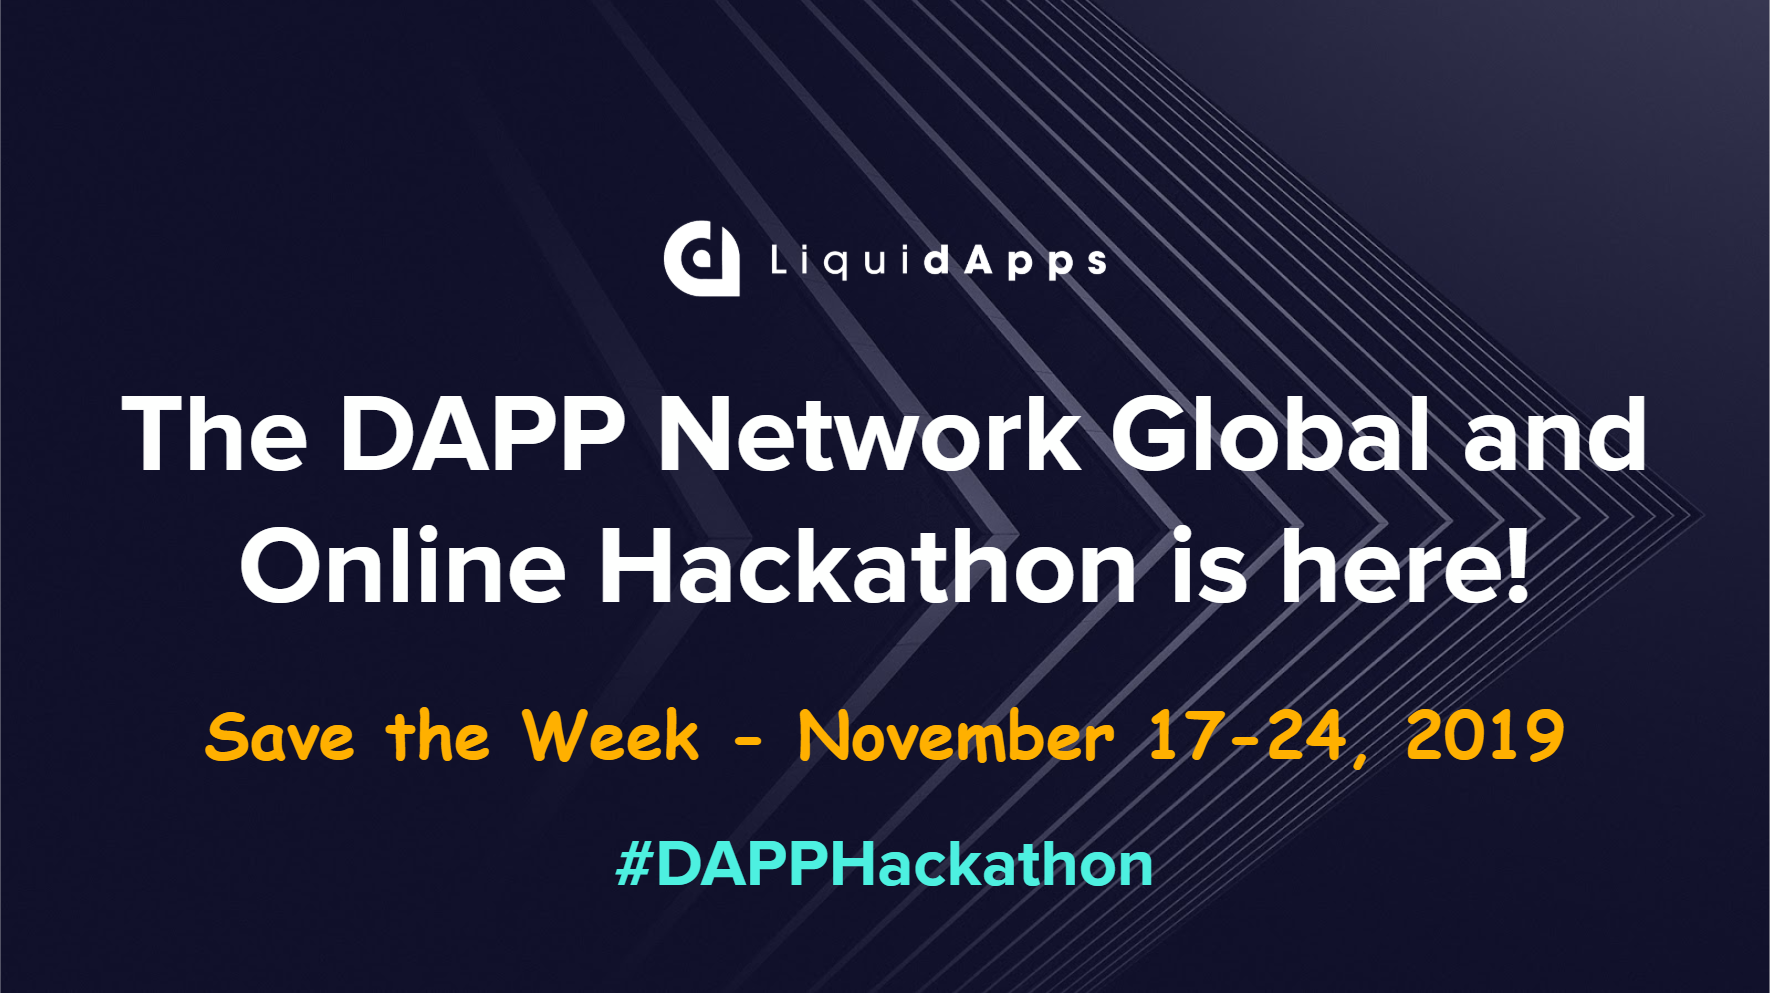 liquidapps-announced-the-first-dapp-network-hackathon